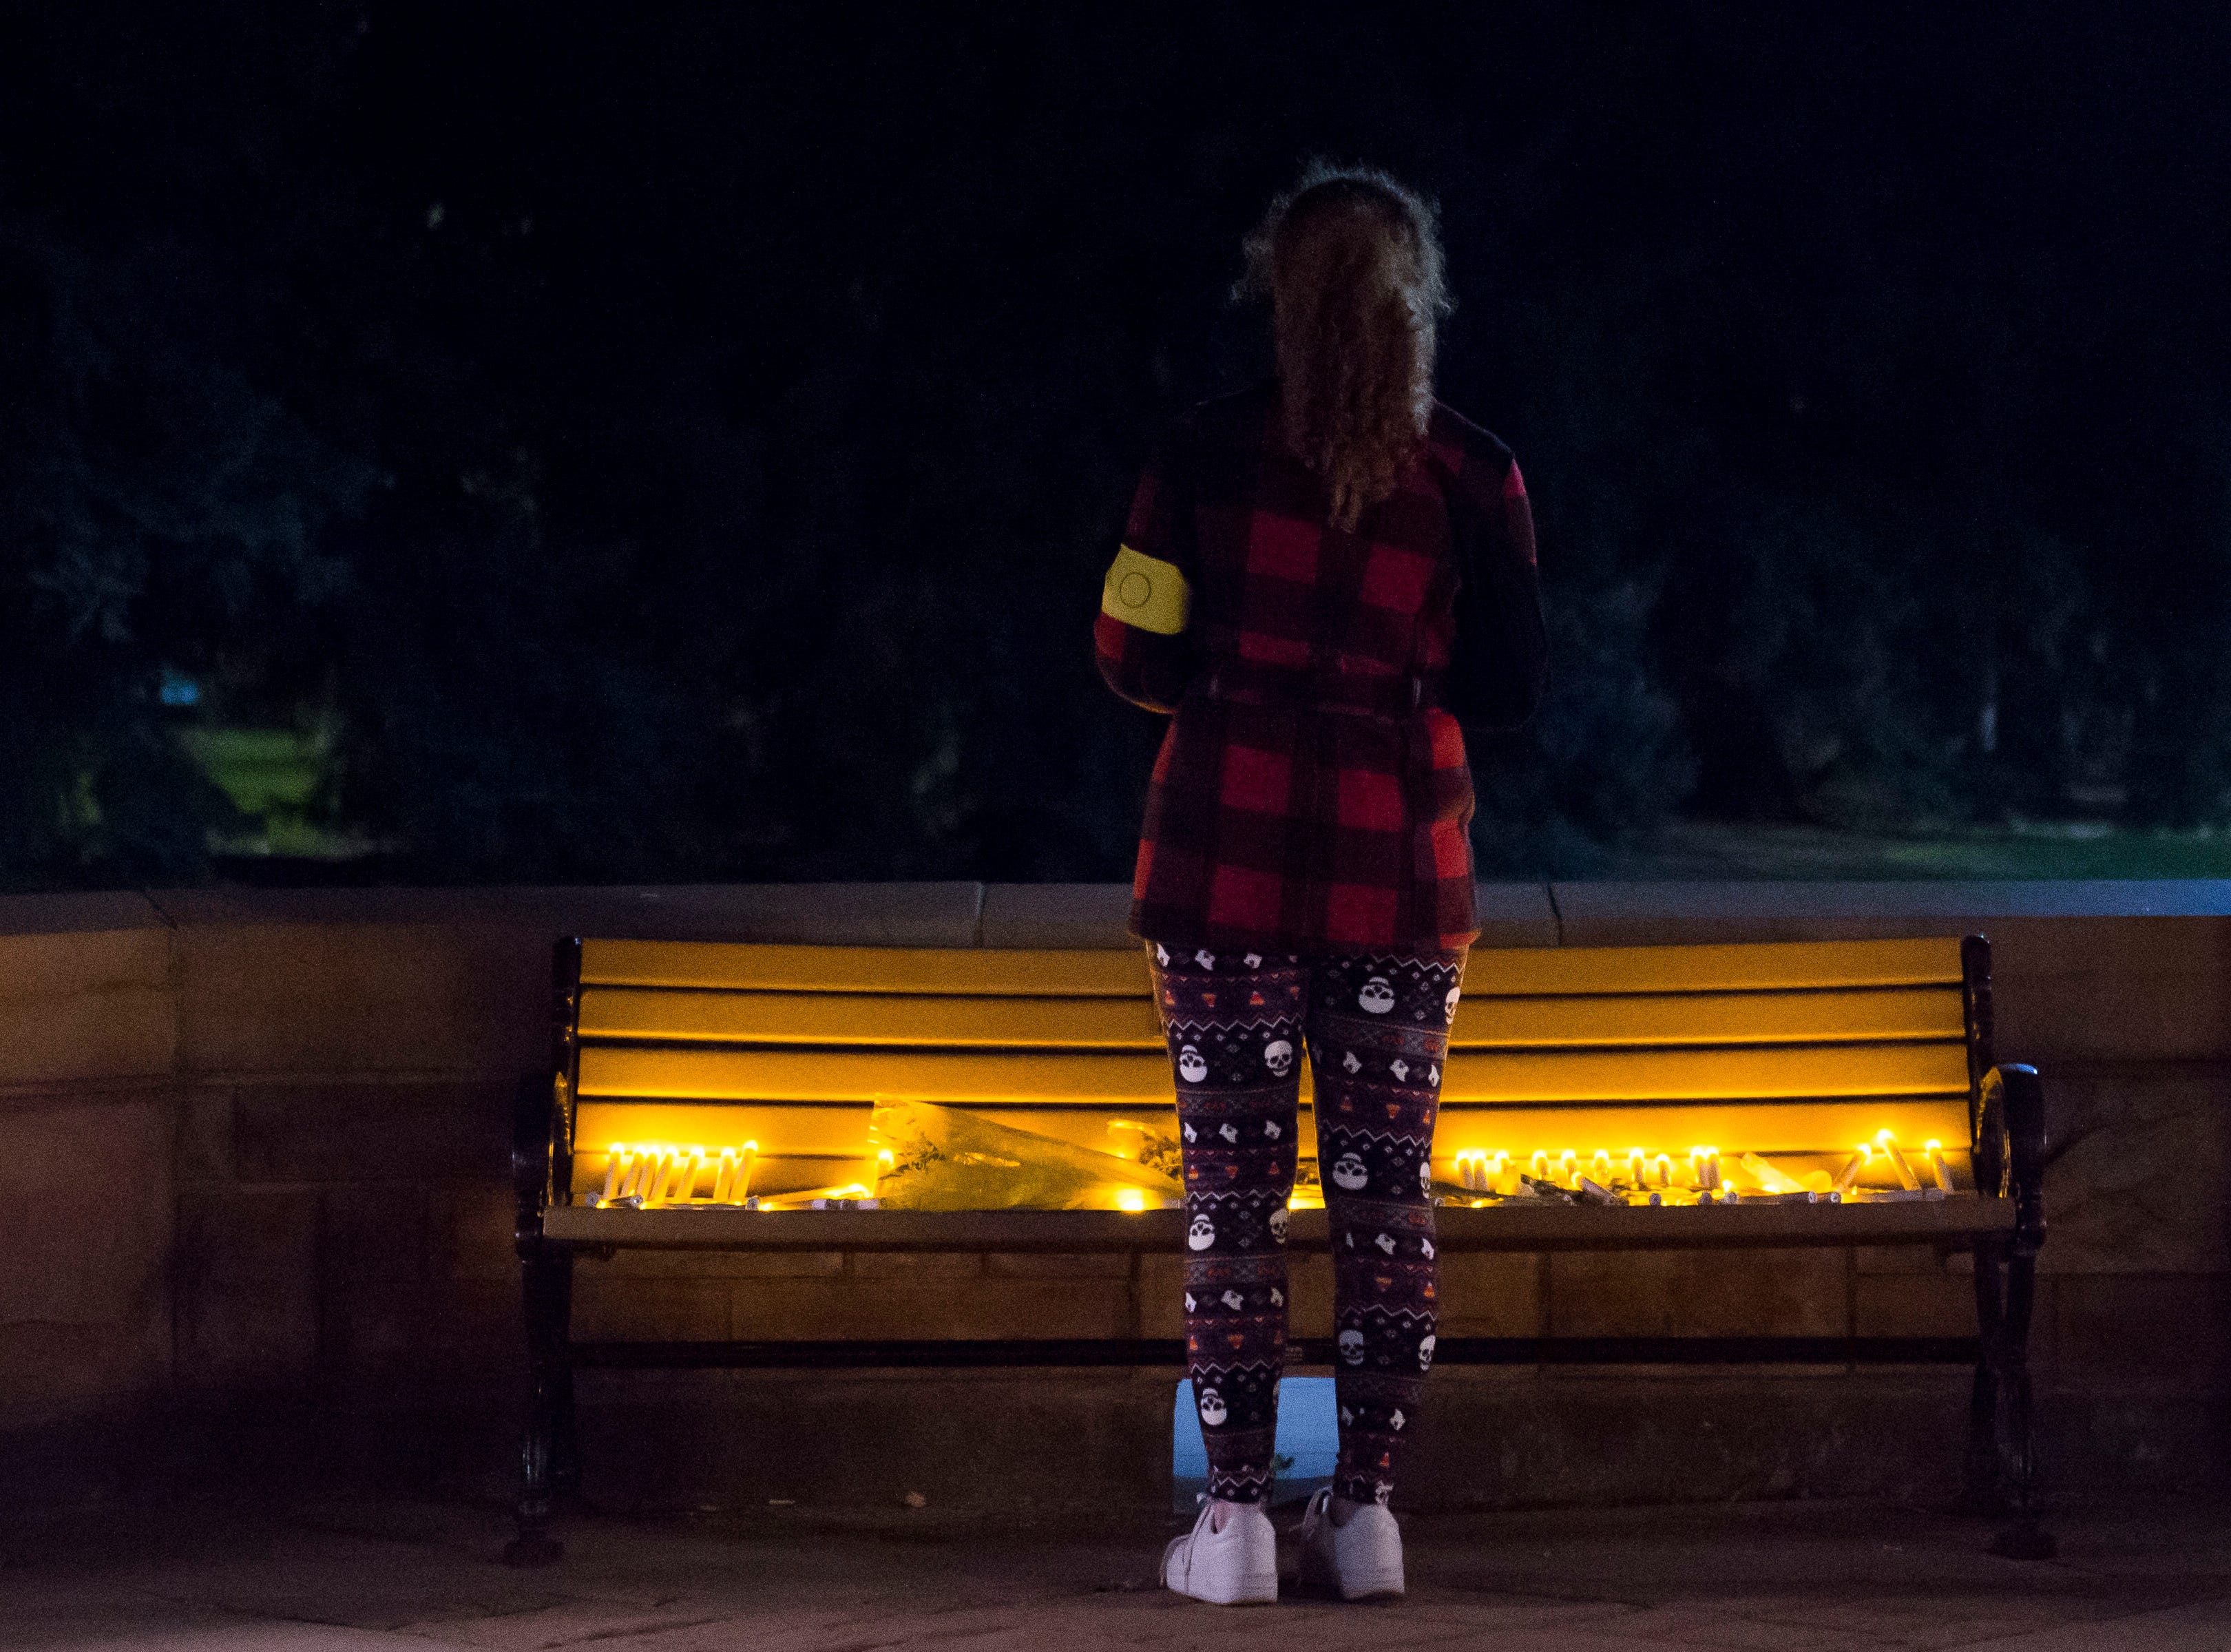 University of Wyoming junior journalism major Monica Olson pauses in front of a bench dedicated to Matthew Shepard after a candlelight vigil on the 20th anniversary of Shepard's death on Friday, Oct. 12, 2018, at Prexy's Pasture on the University of Wyoming campus in Laramie, Wyo.